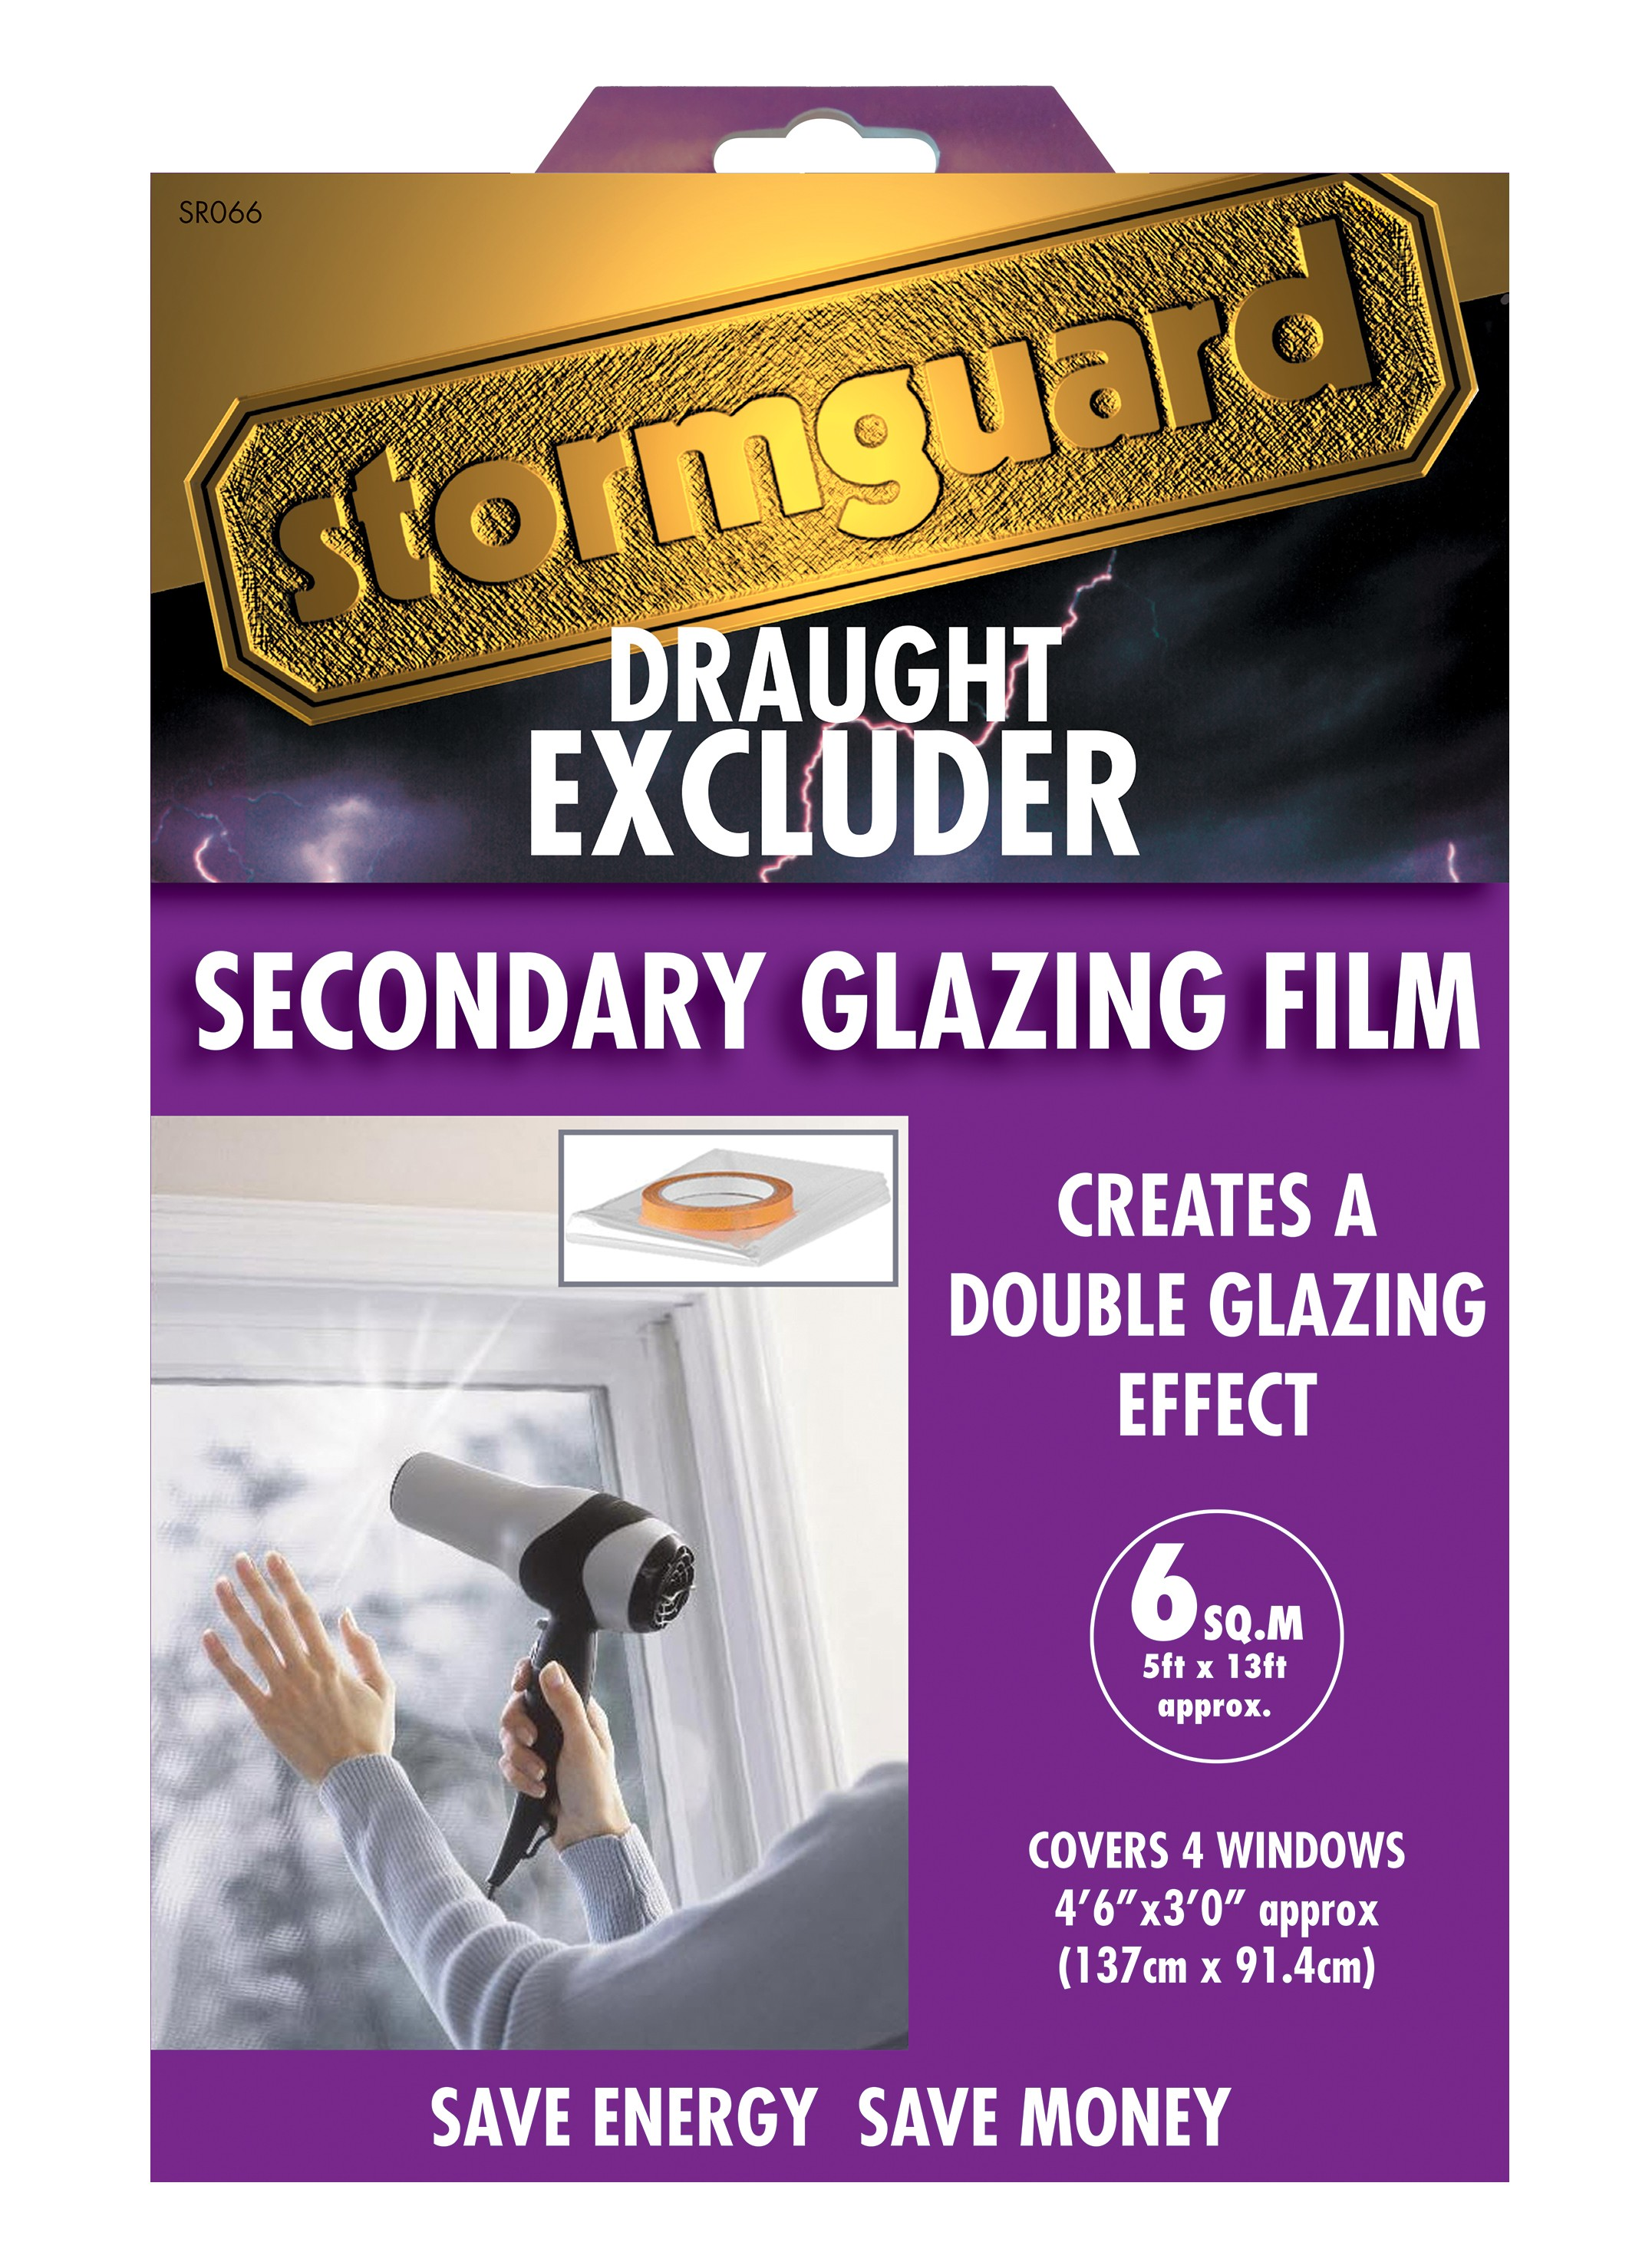 Double Glazing Product : Seasonal double glazing film — stormguard